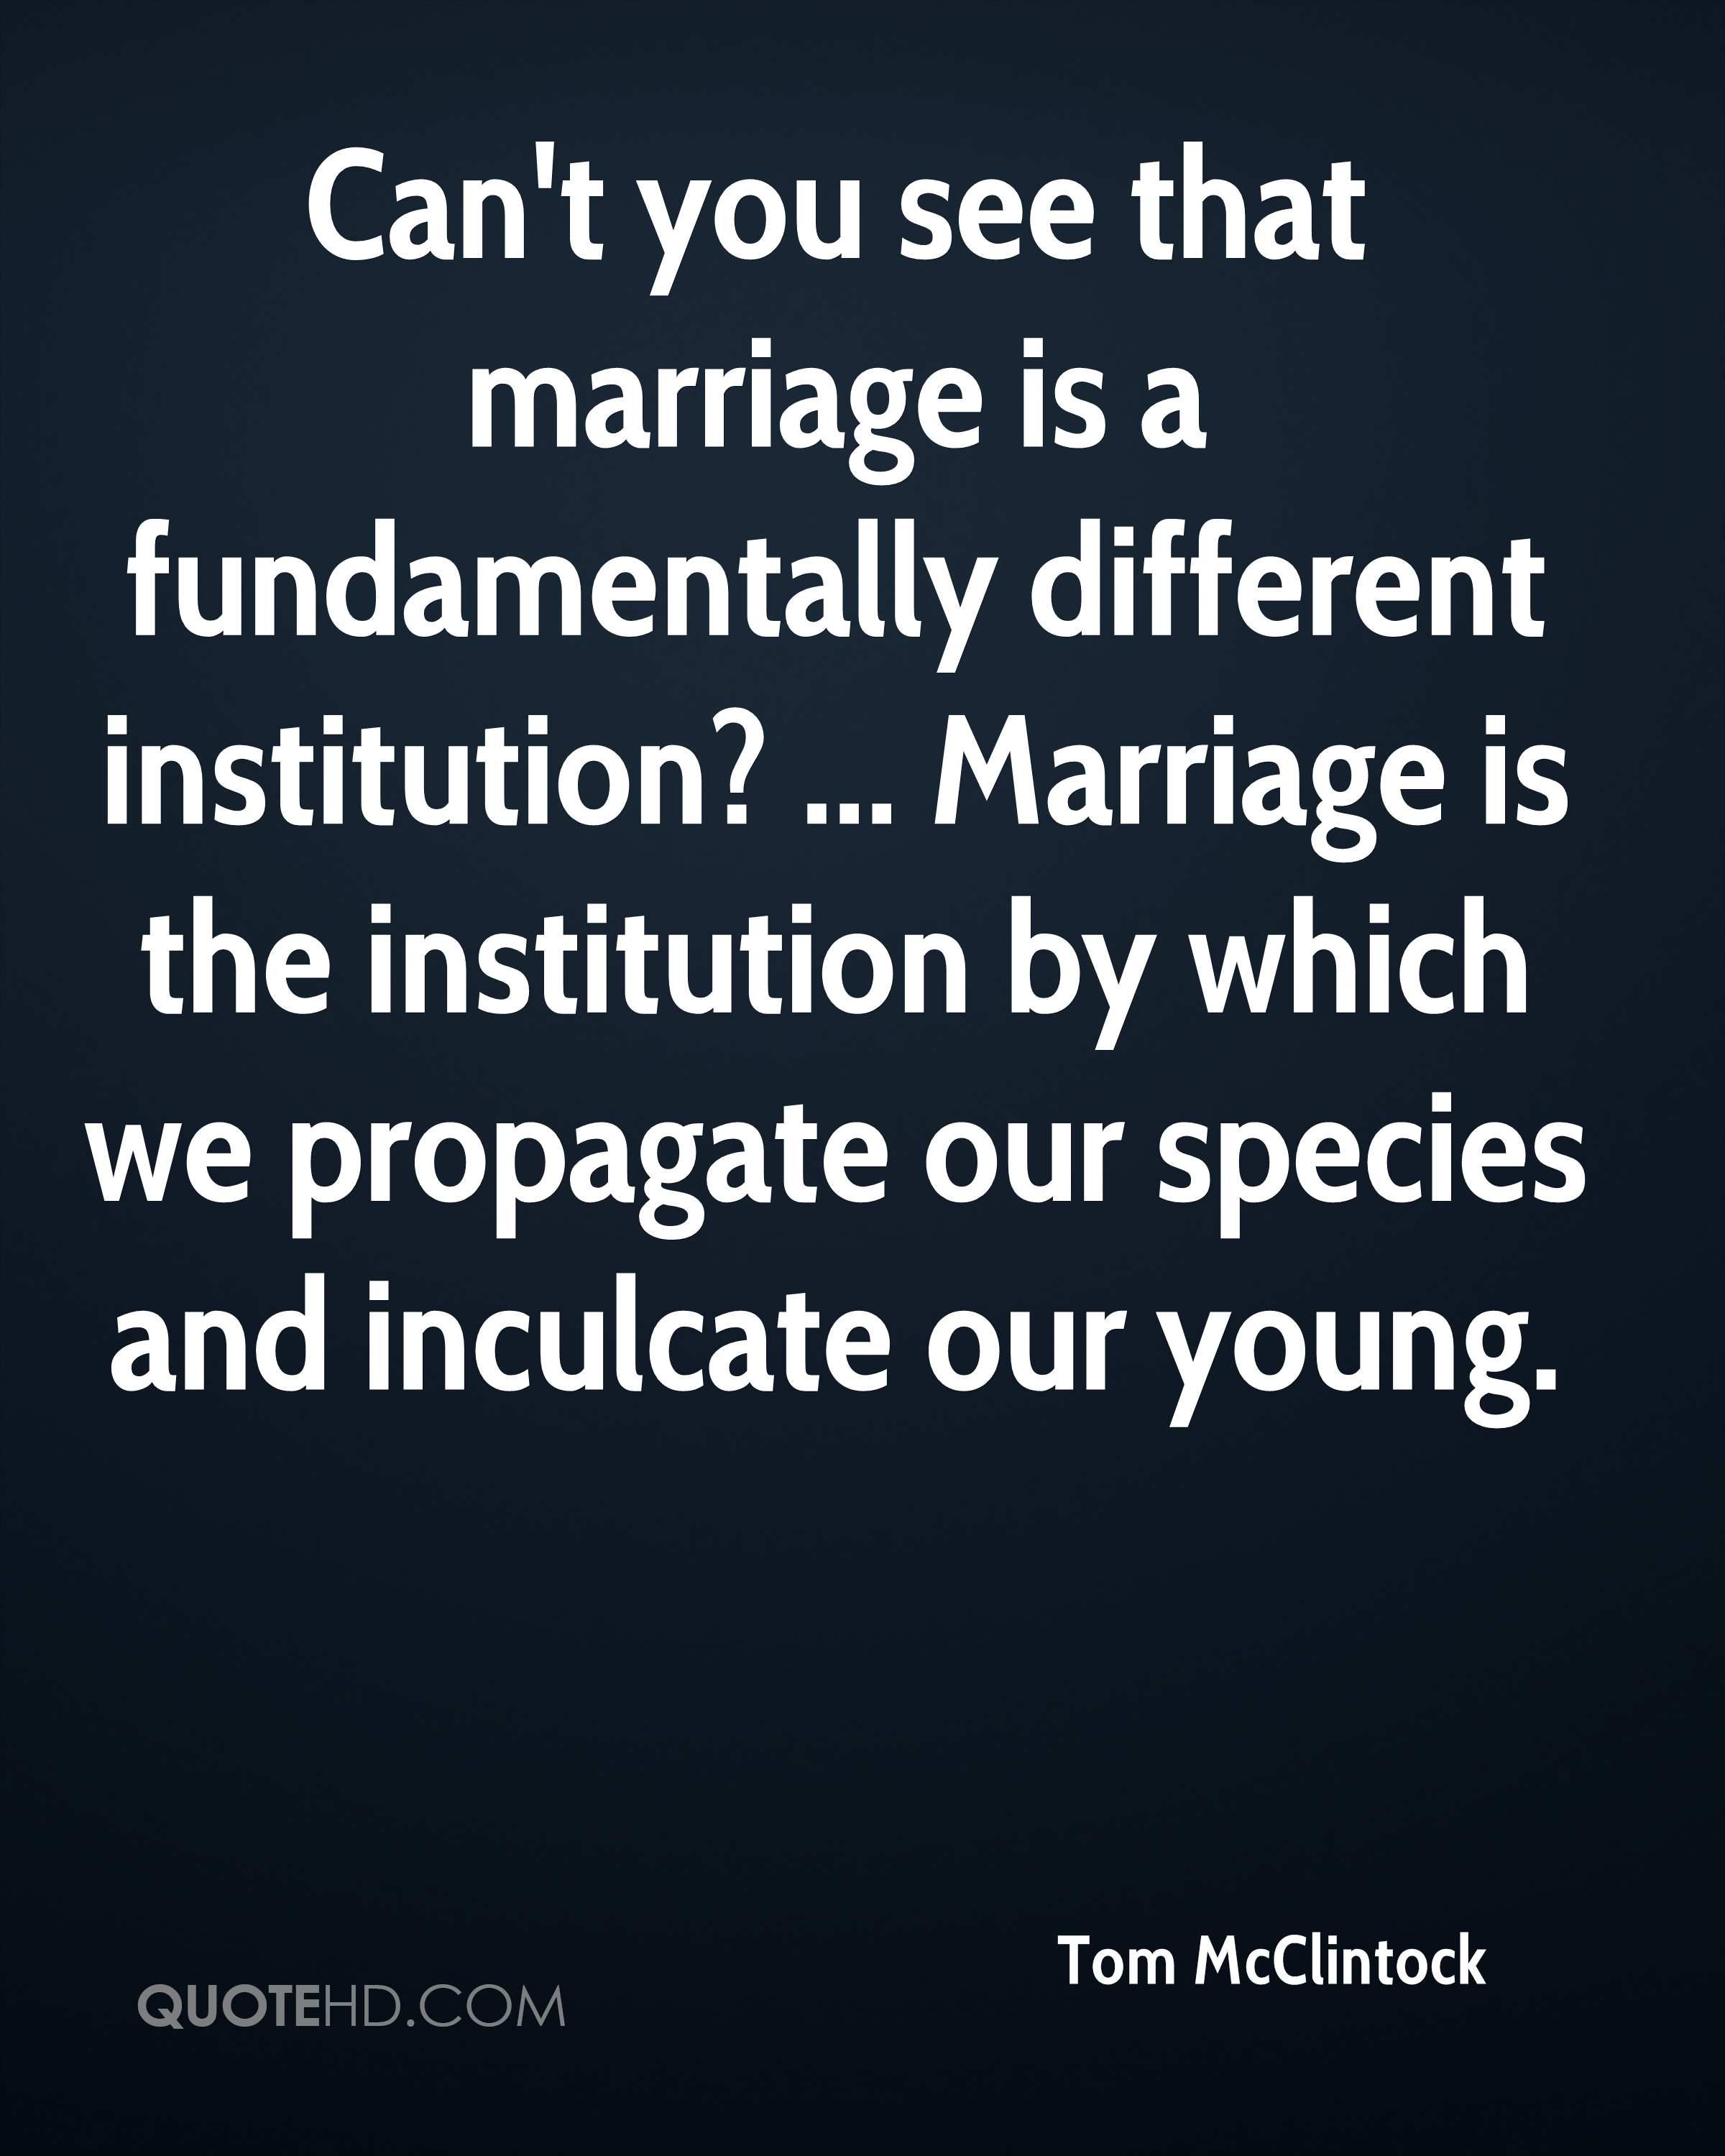 Can't you see that marriage is a fundamentally different institution? ... Marriage is the institution by which we propagate our species and inculcate our young.